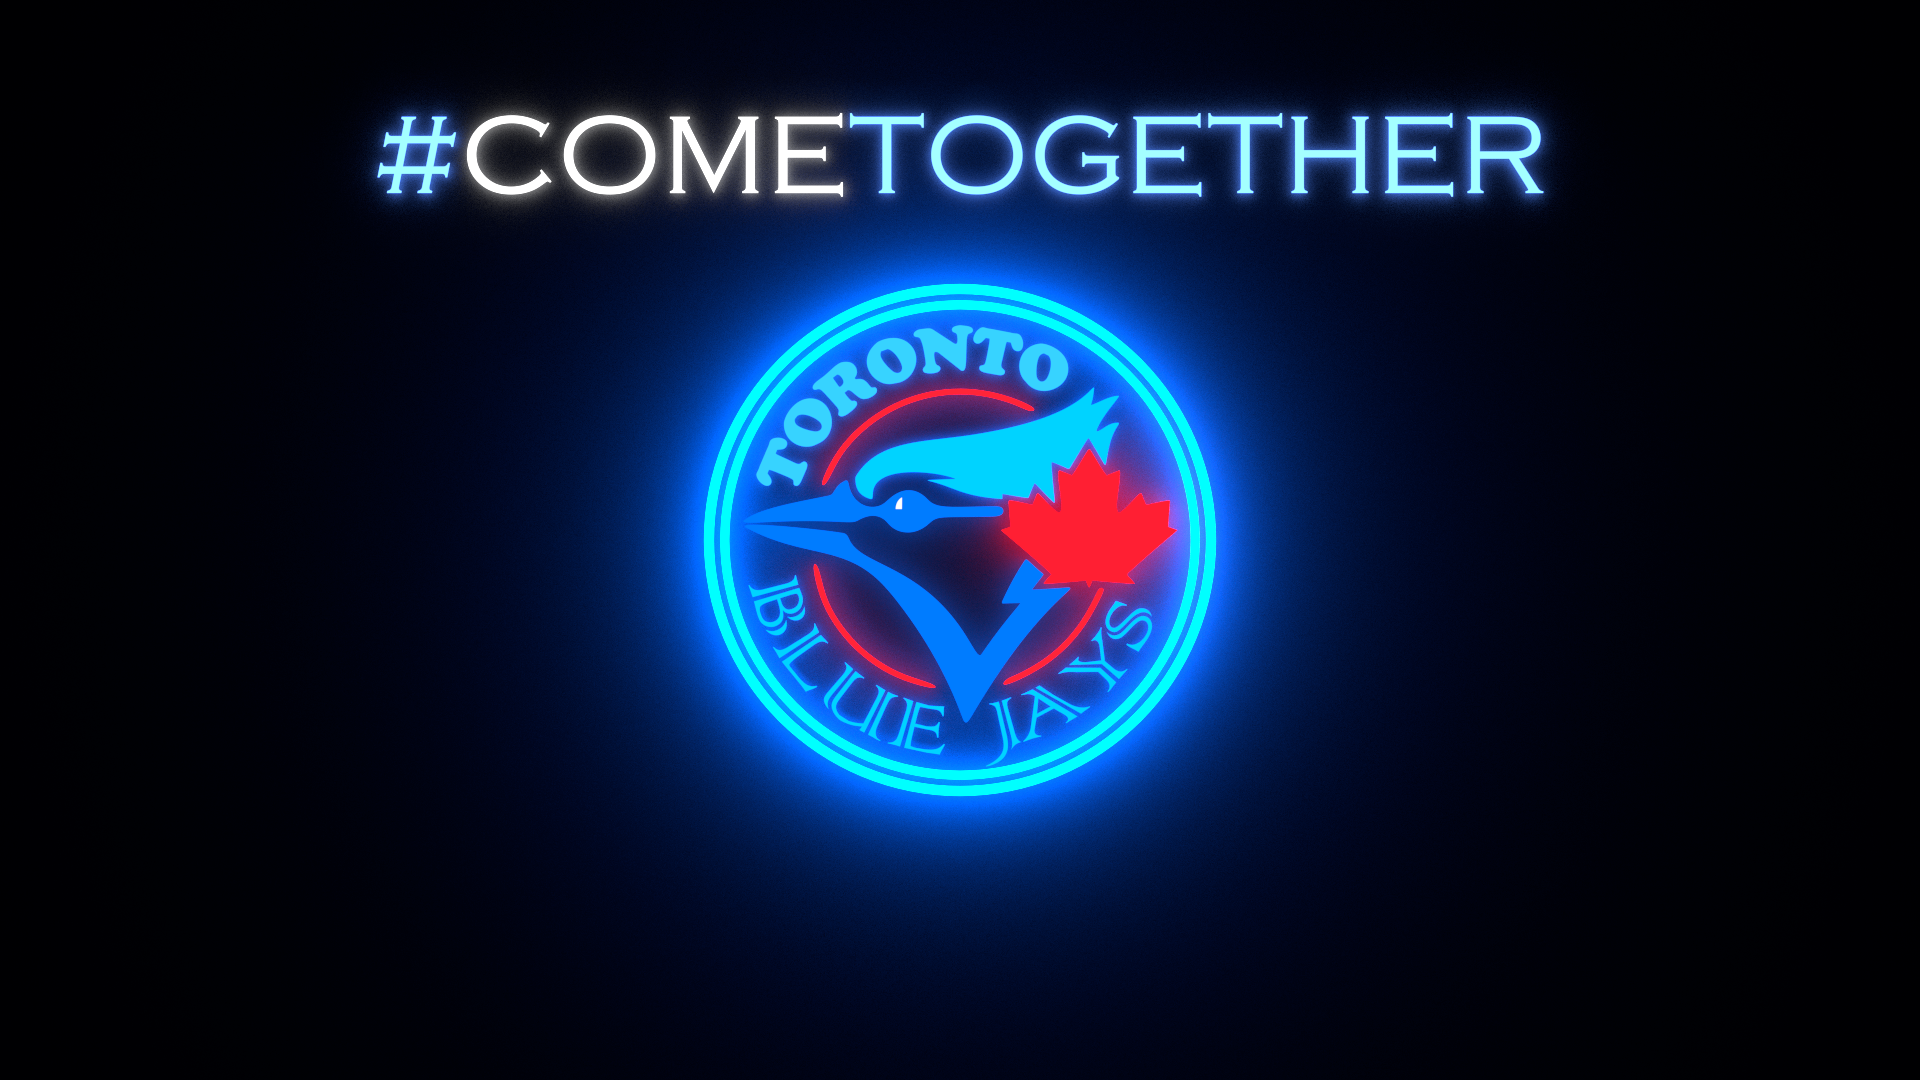 RMD:19 HD Toronto Blue Jays Wallpapers